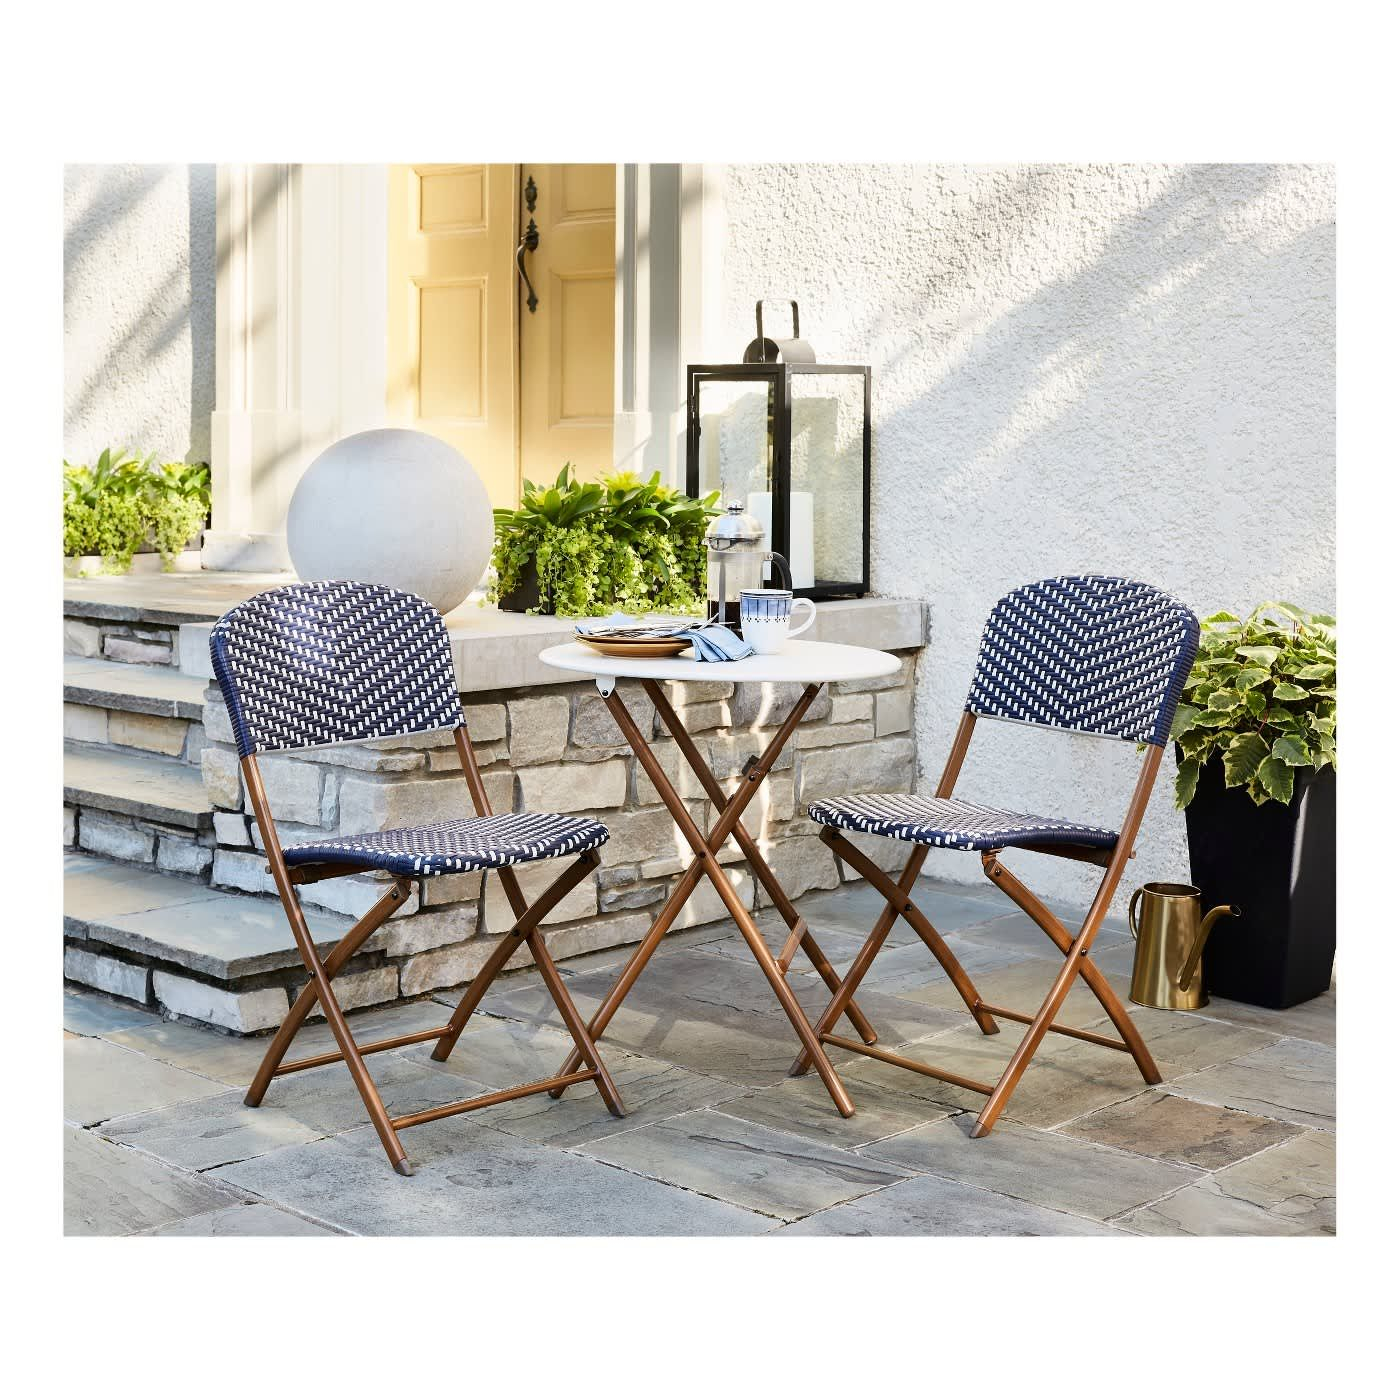 The Best Outdoor Furniture For Small Patios And Balconies with regard to proportions 1400 X 1400